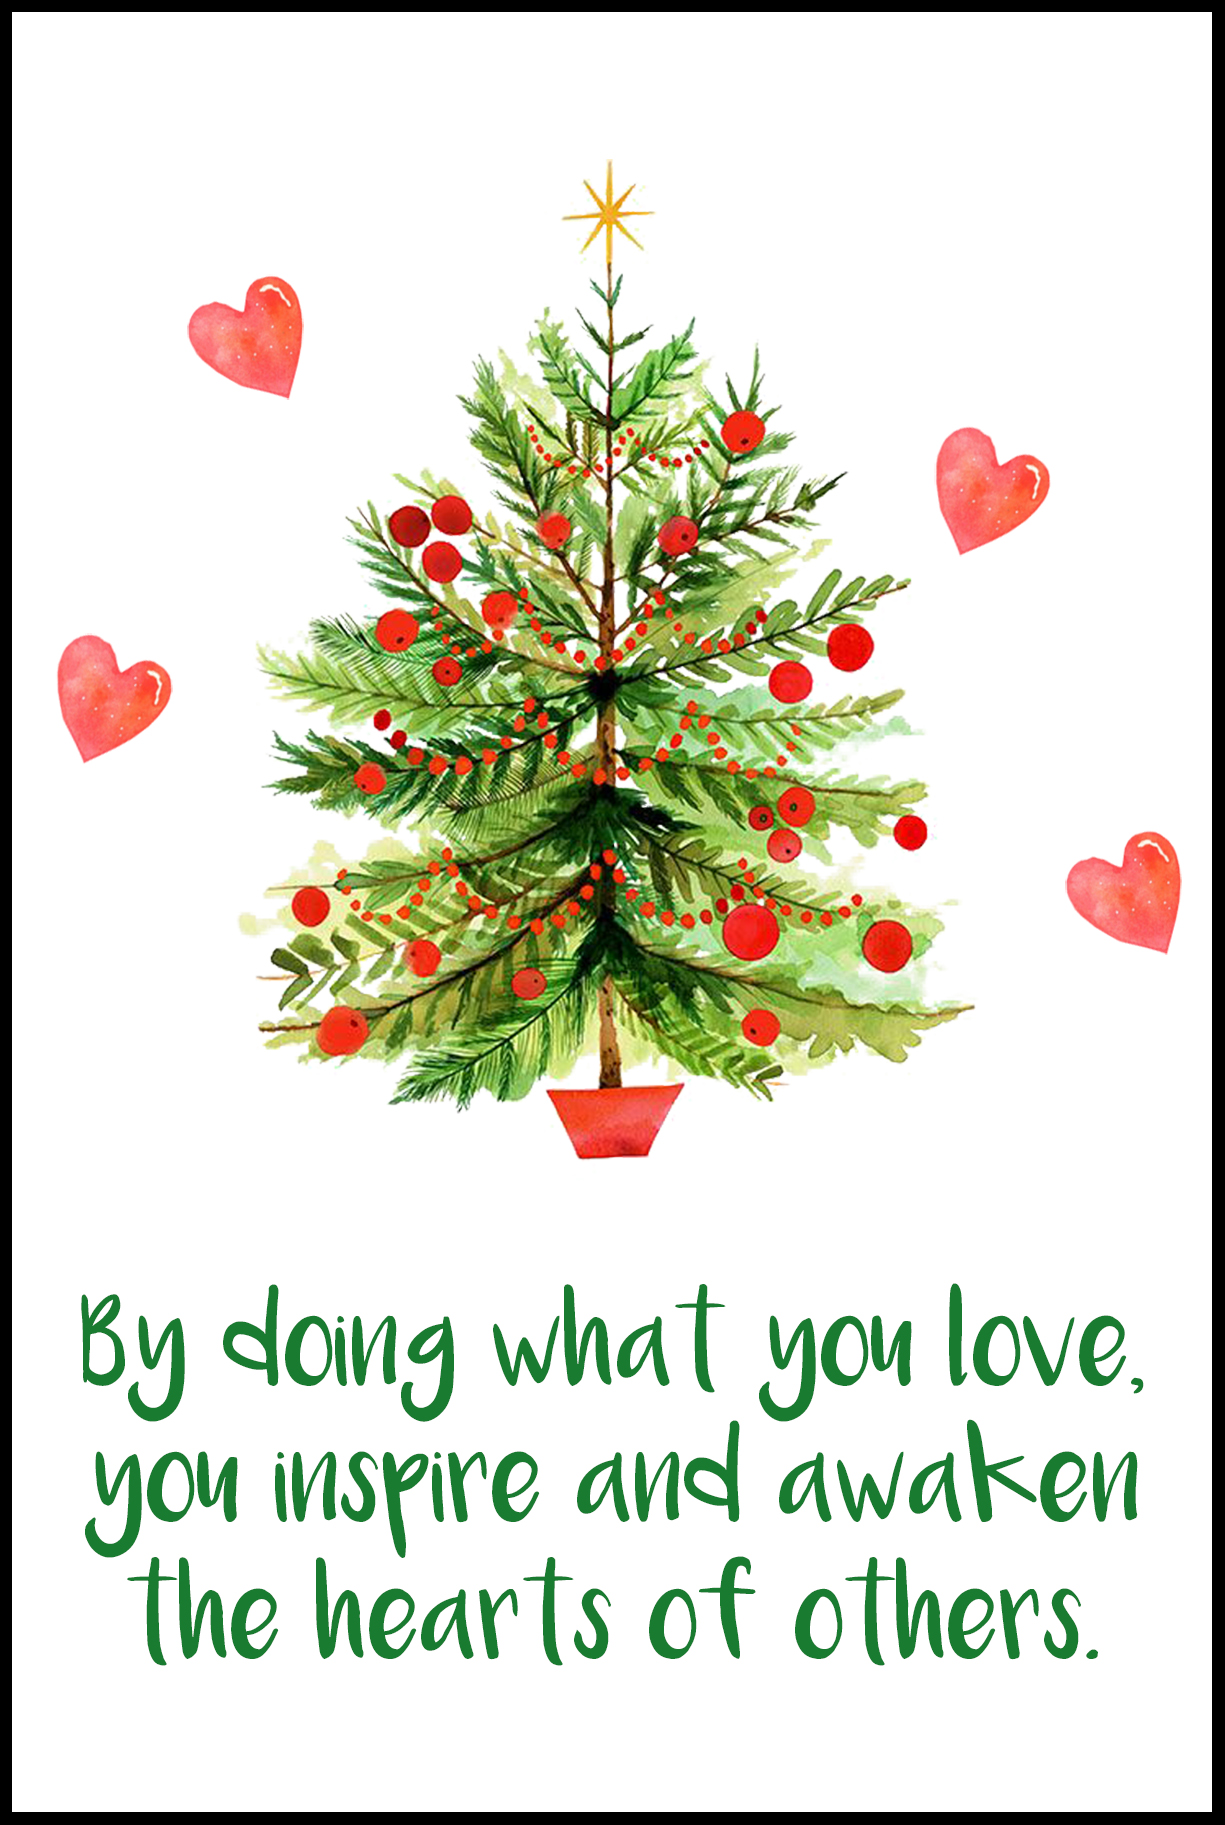 By Doing What You Love, You Inspire and Awaken the Hearts of Others Card